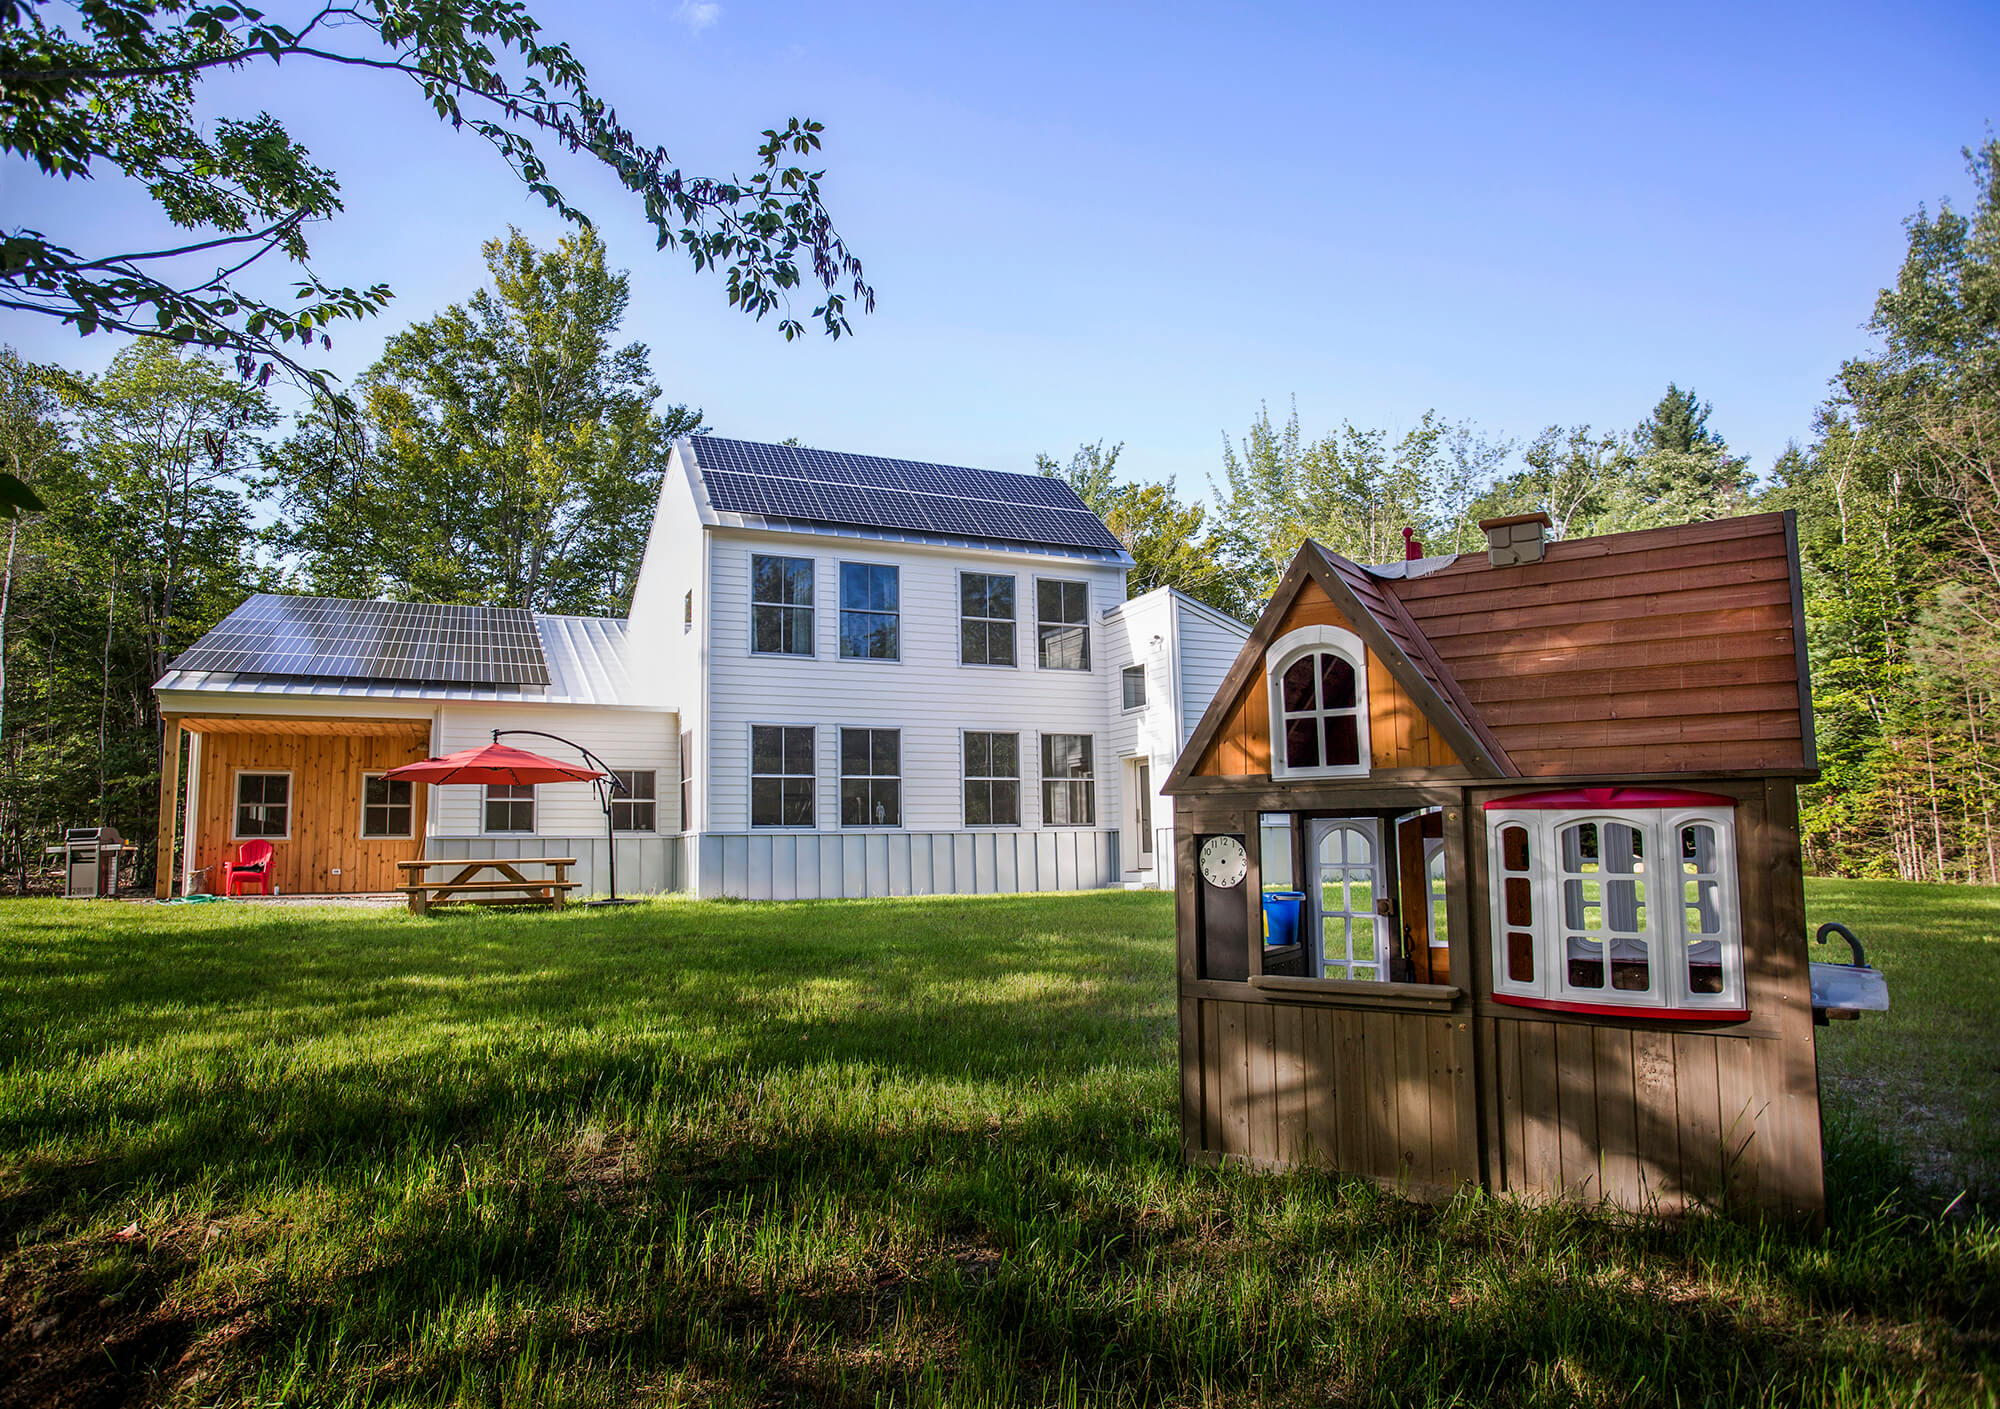 Architectural Photography, View of a play house and new green home in rural Maine